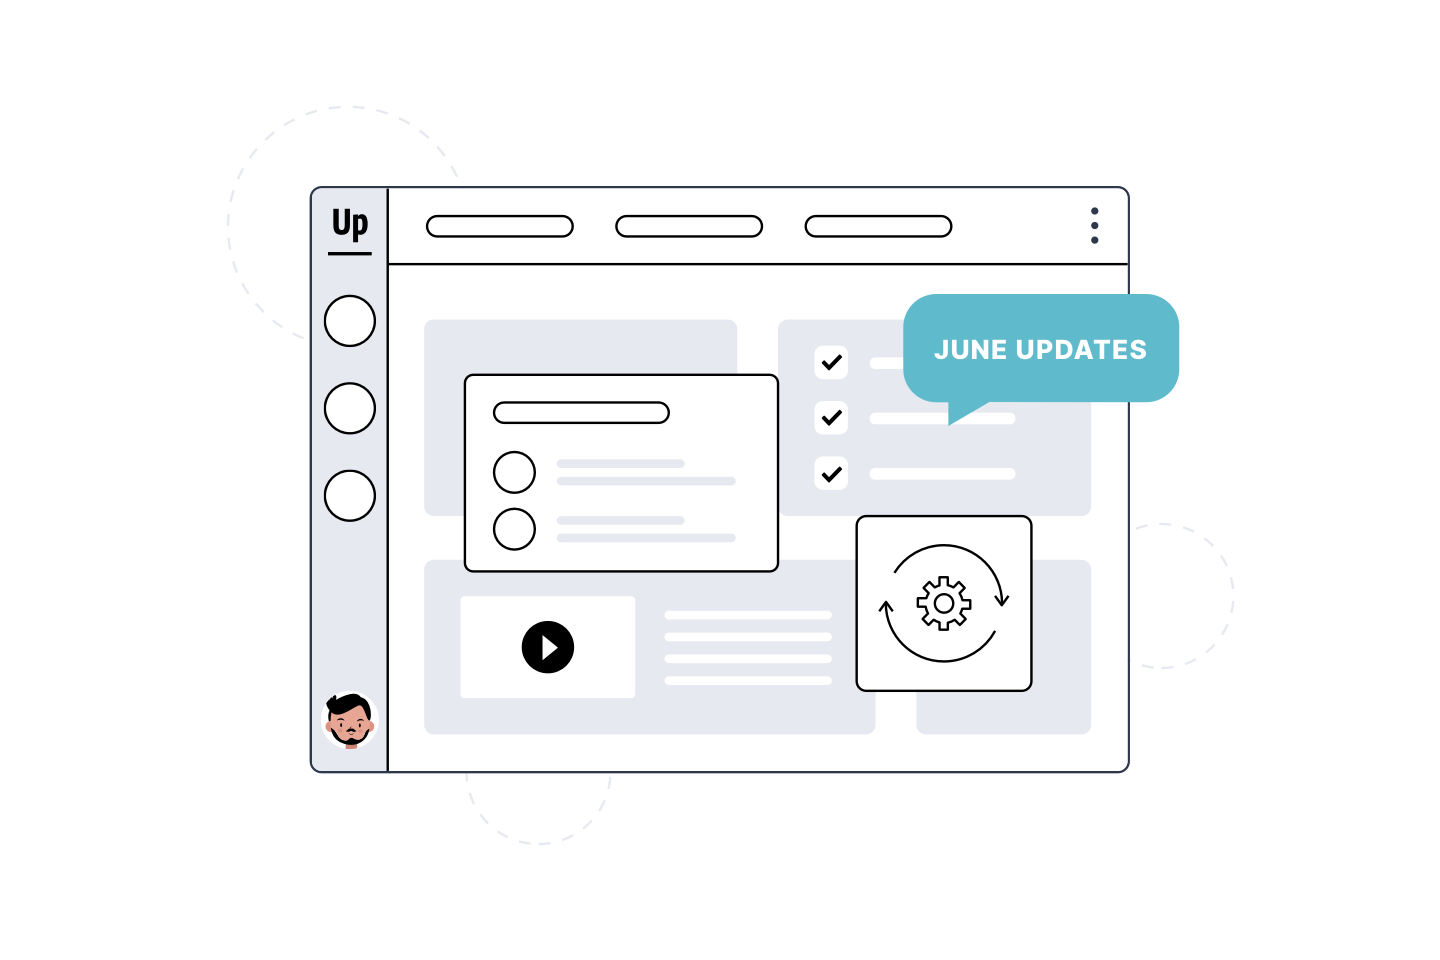 UpCoach Update in June